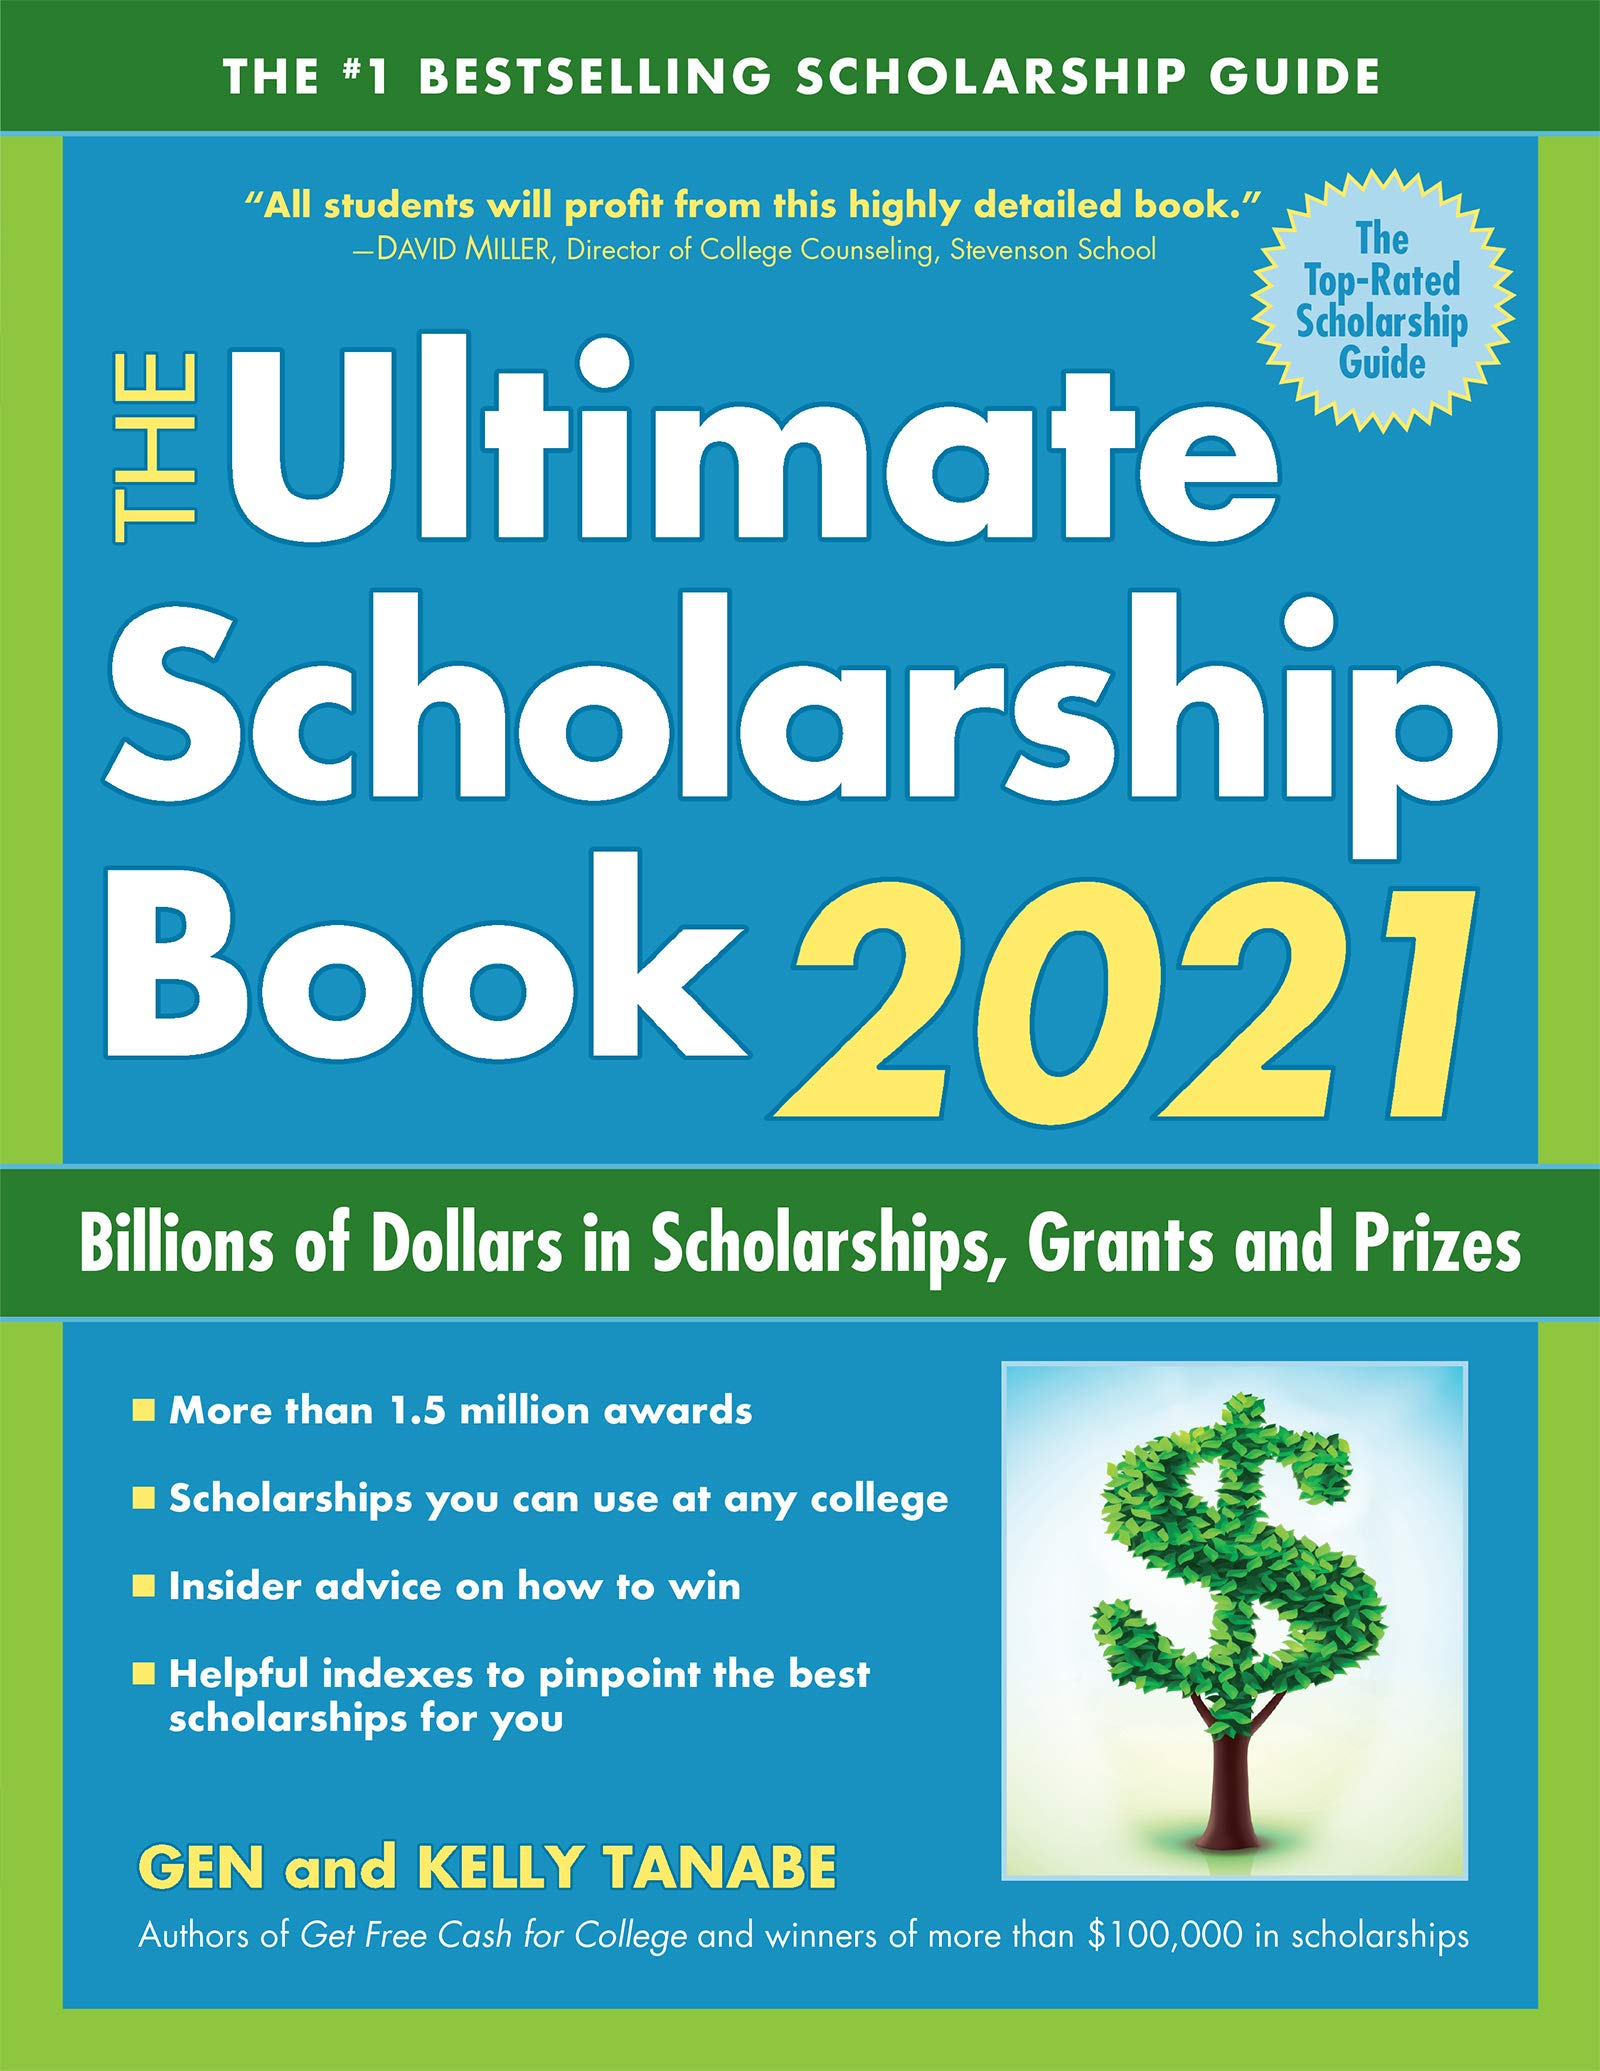 Best Free Kindle Books 2021 Amazon.com: The Ultimate Scholarship Book 2021: Billions of